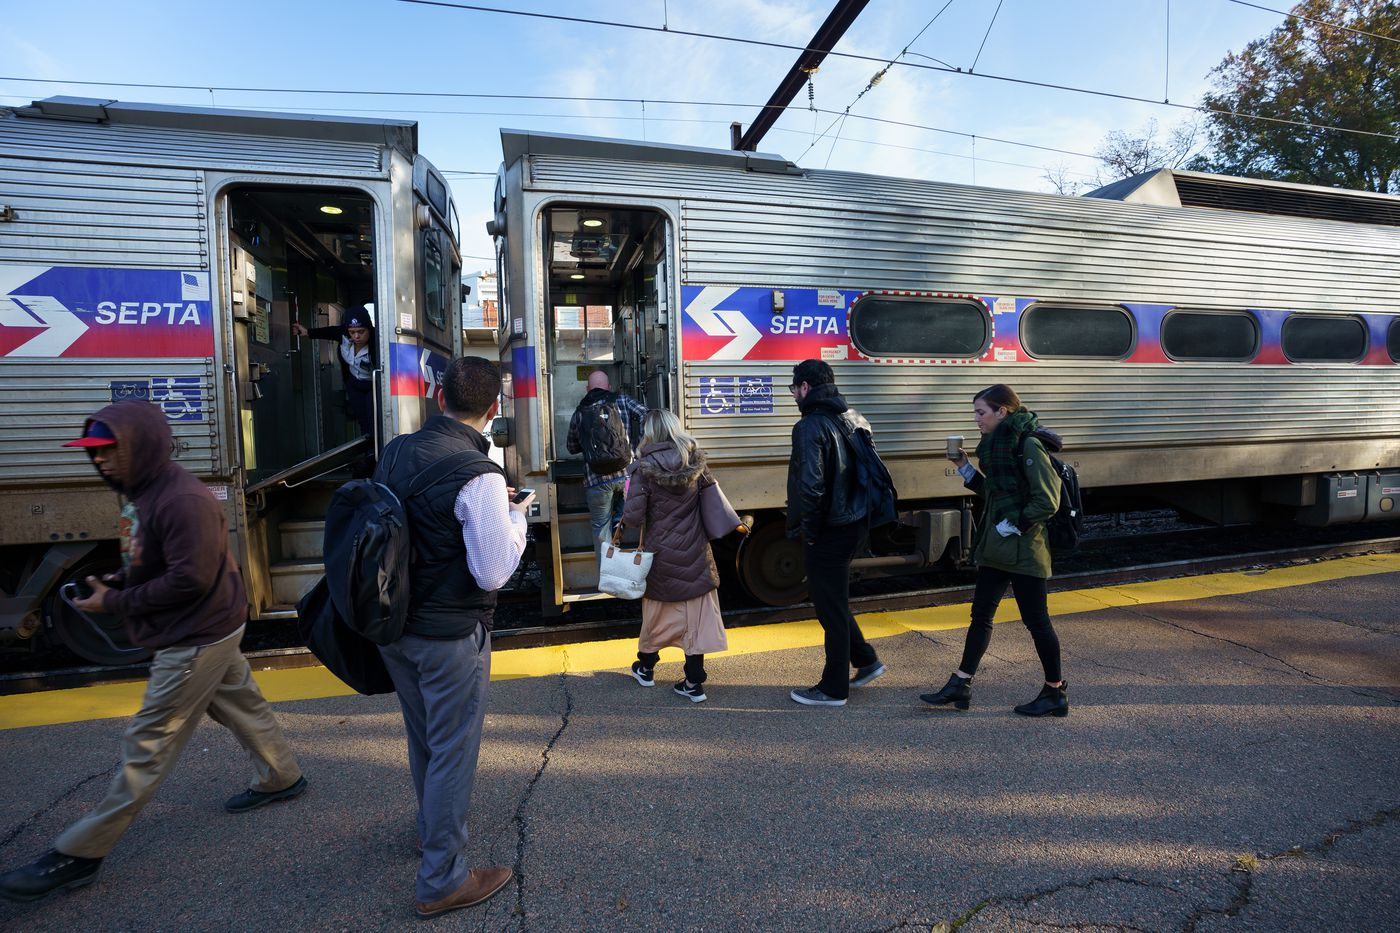 Commuters at the East Falls Regional Rail SEPTA Station, where people have not yet begun to use the SEPTA key cards to board regional rail heading into the city, but some use the key cards to board regional rail from center city stations, in Philadelphia, November 11, 2019.